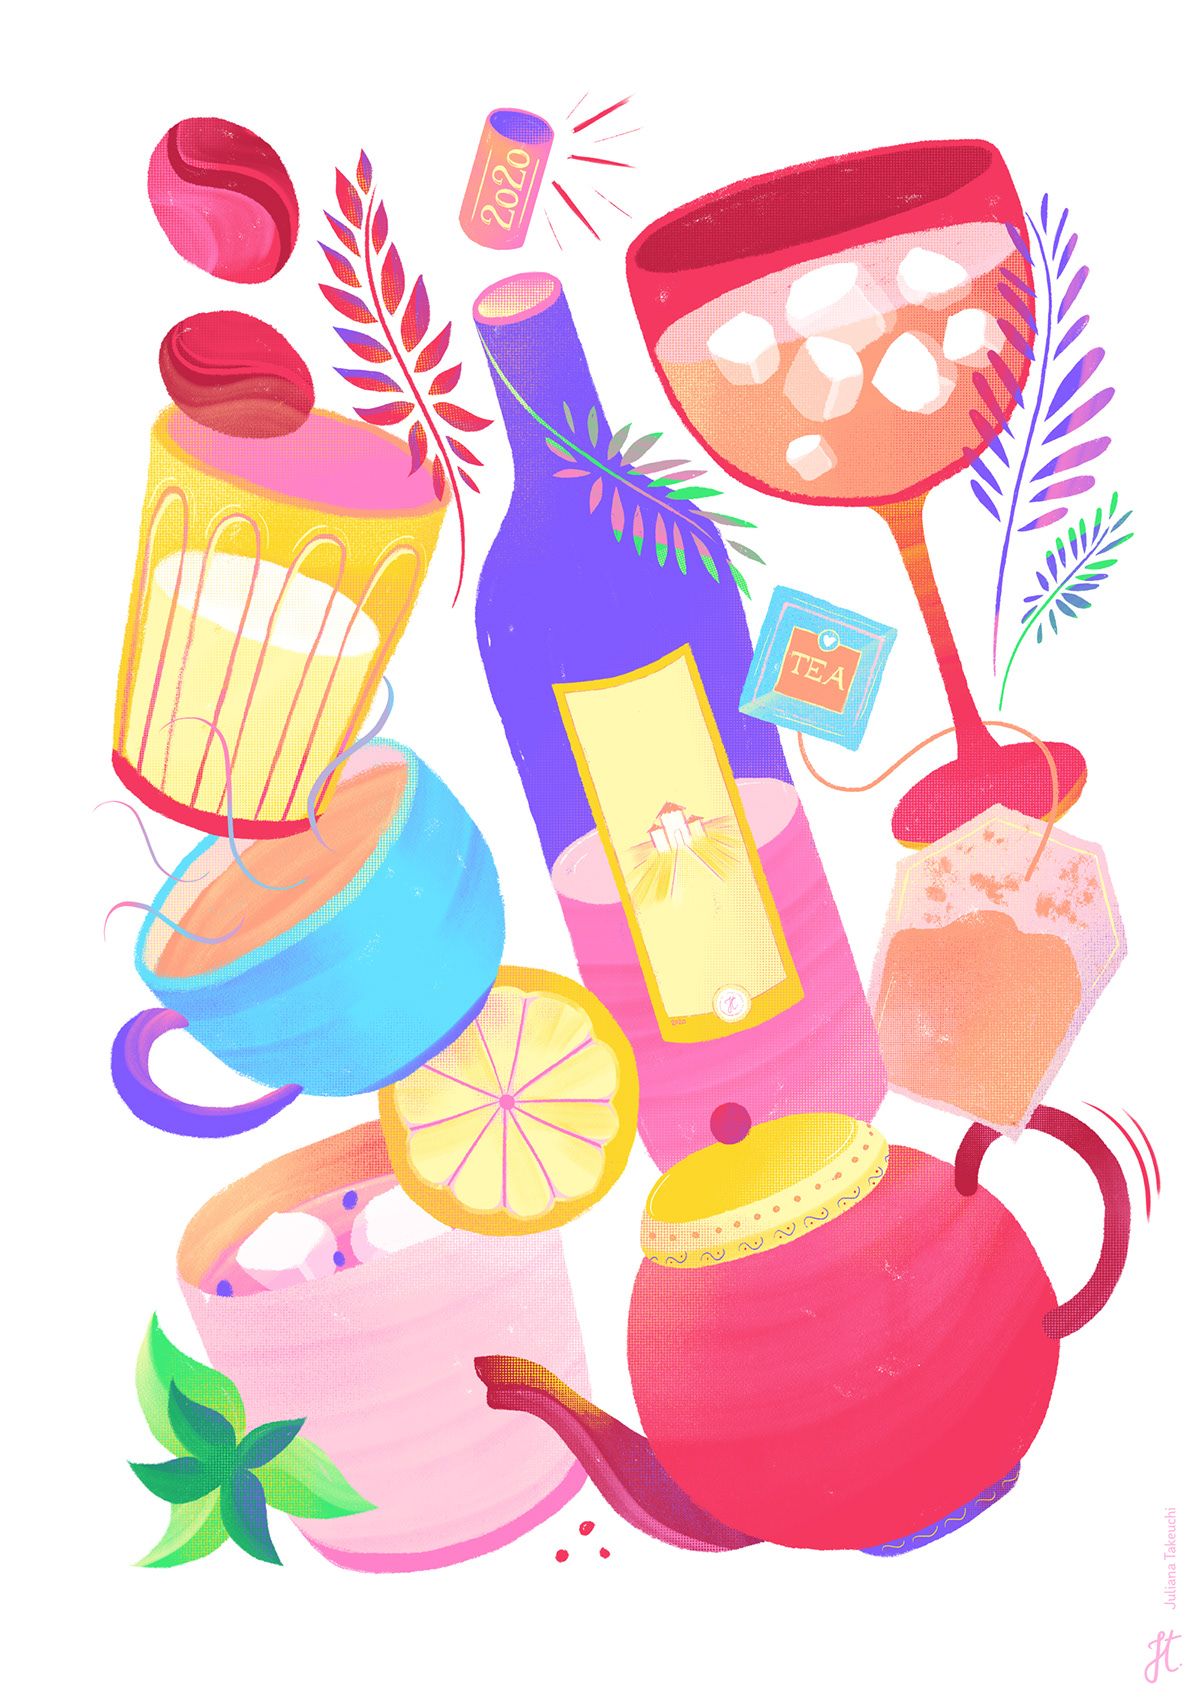 brushes color Digital Art  draw Food  Icon ILLUSTRATION  lettering pattern texture